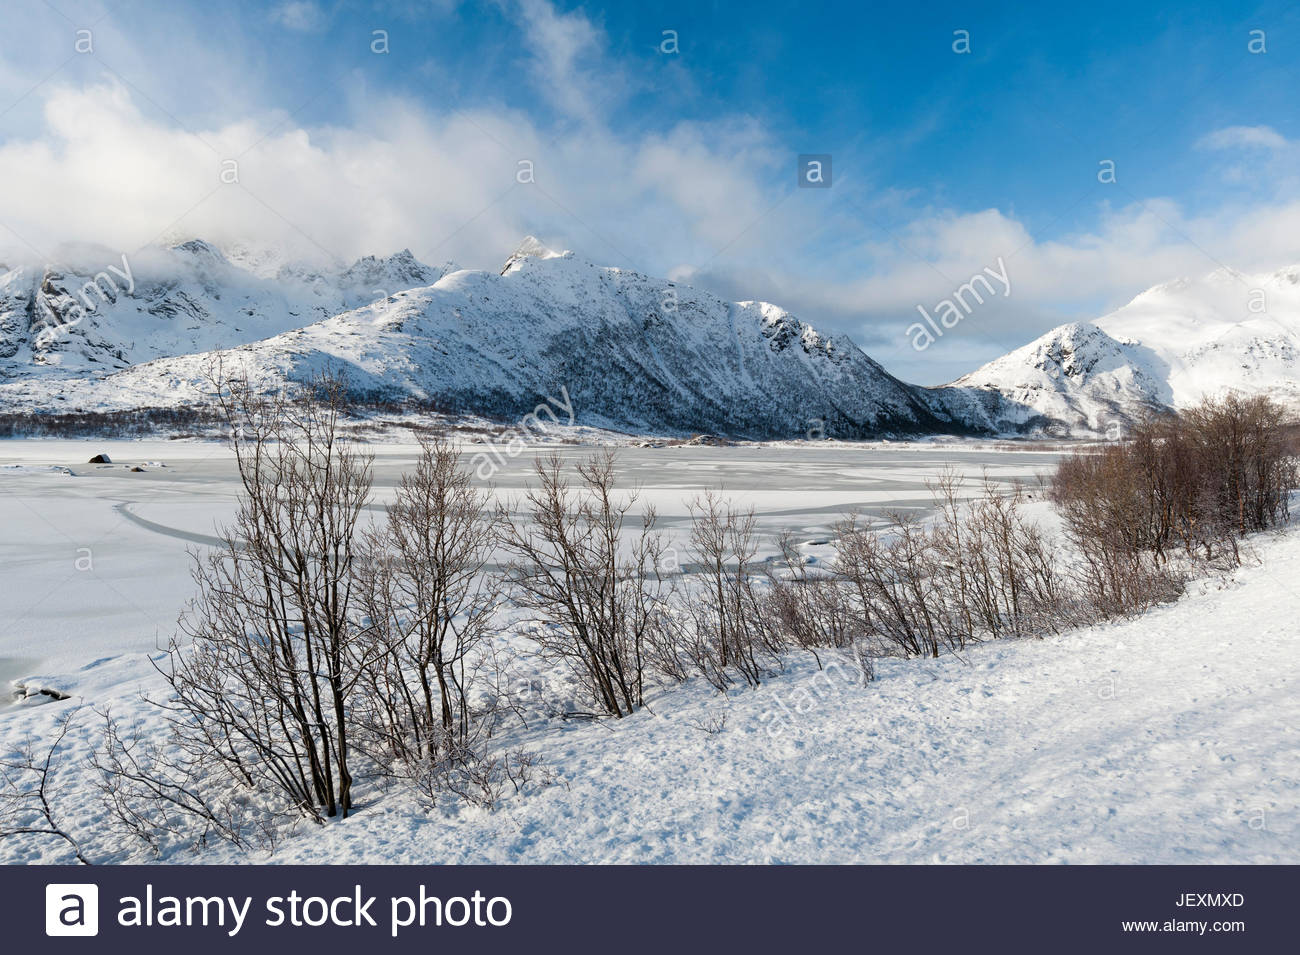 A scenic and snowy view of a frozen fjord near Svolvaer. - Stock Image